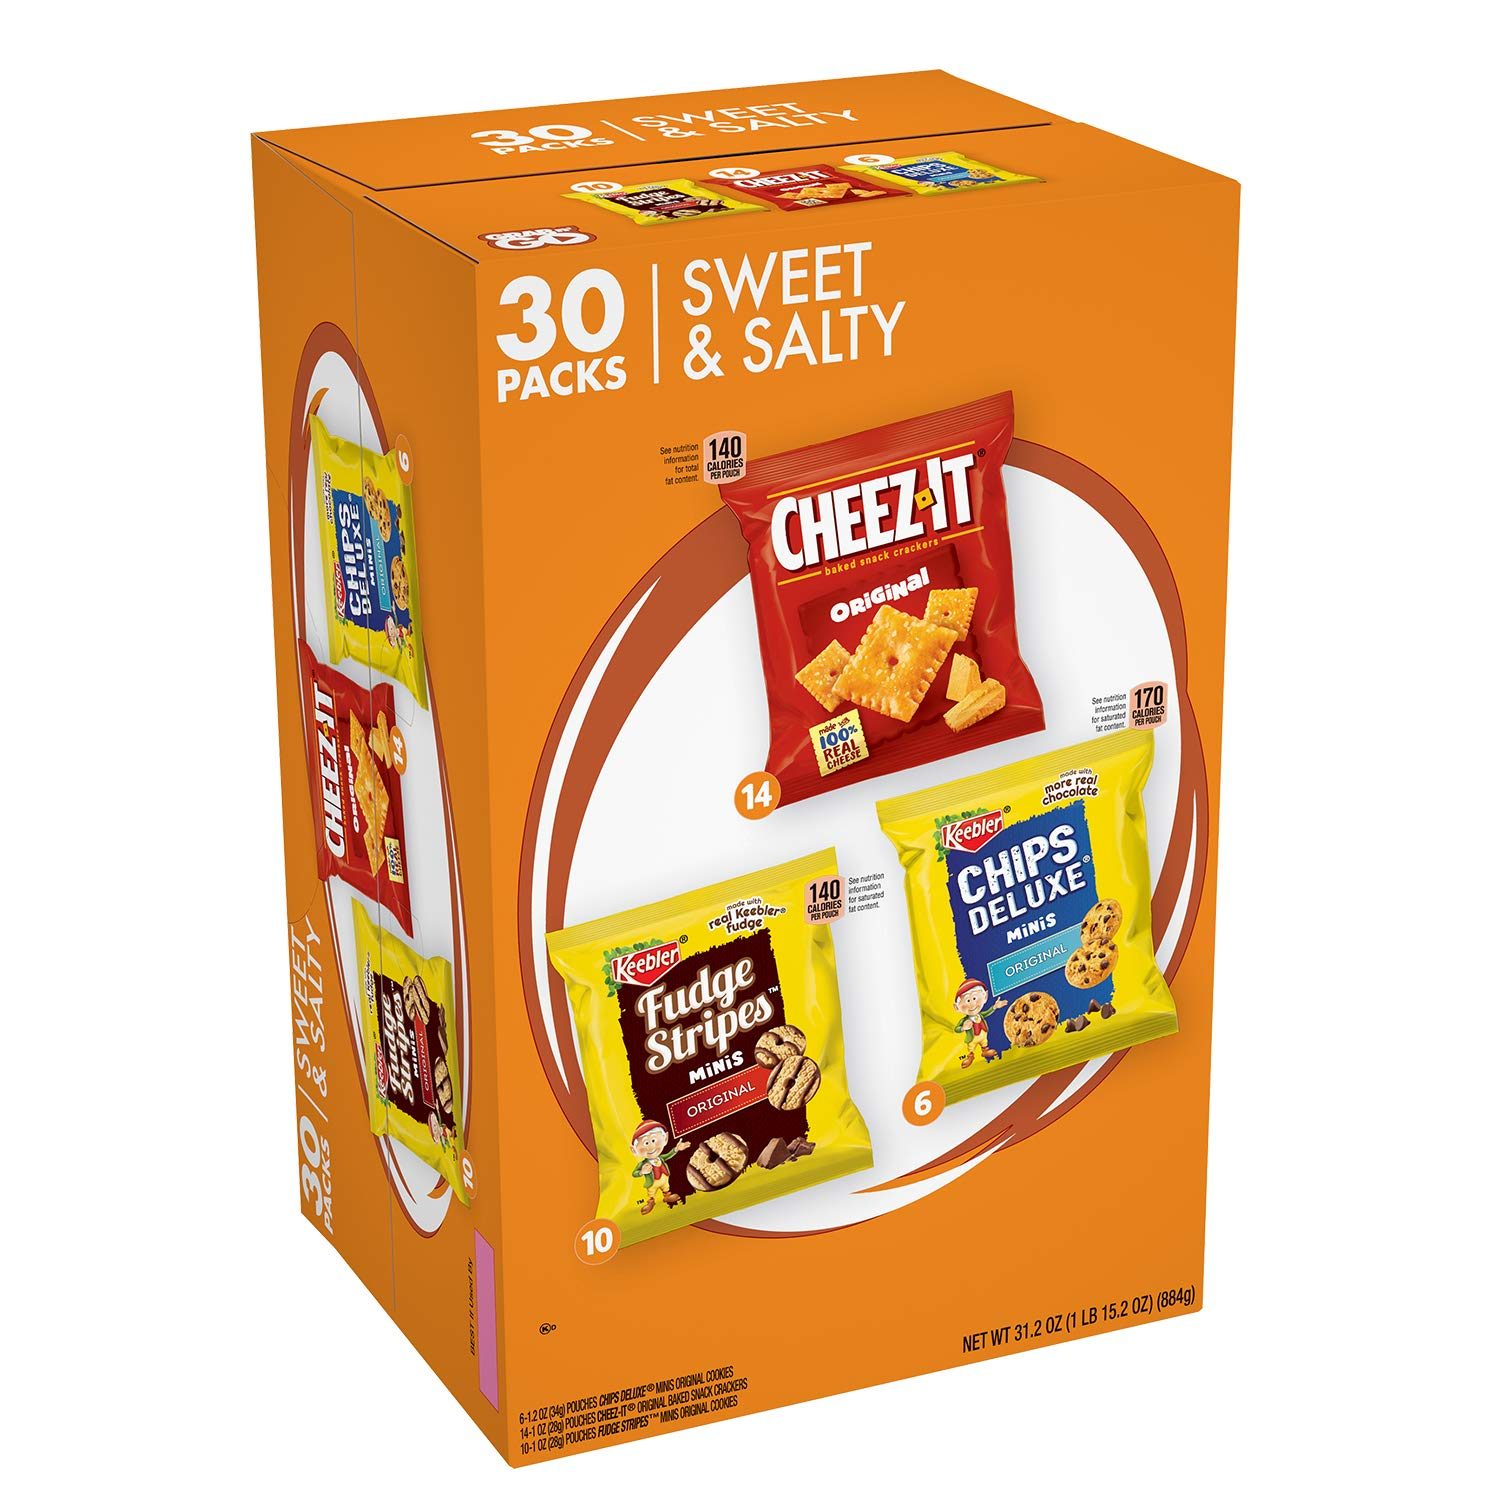 Keebler Sweet & Salty Cookies and Crackers Variety Pack, , 30 Count Chips Deluxe/Fudge Stripe, 31.2 Ounce